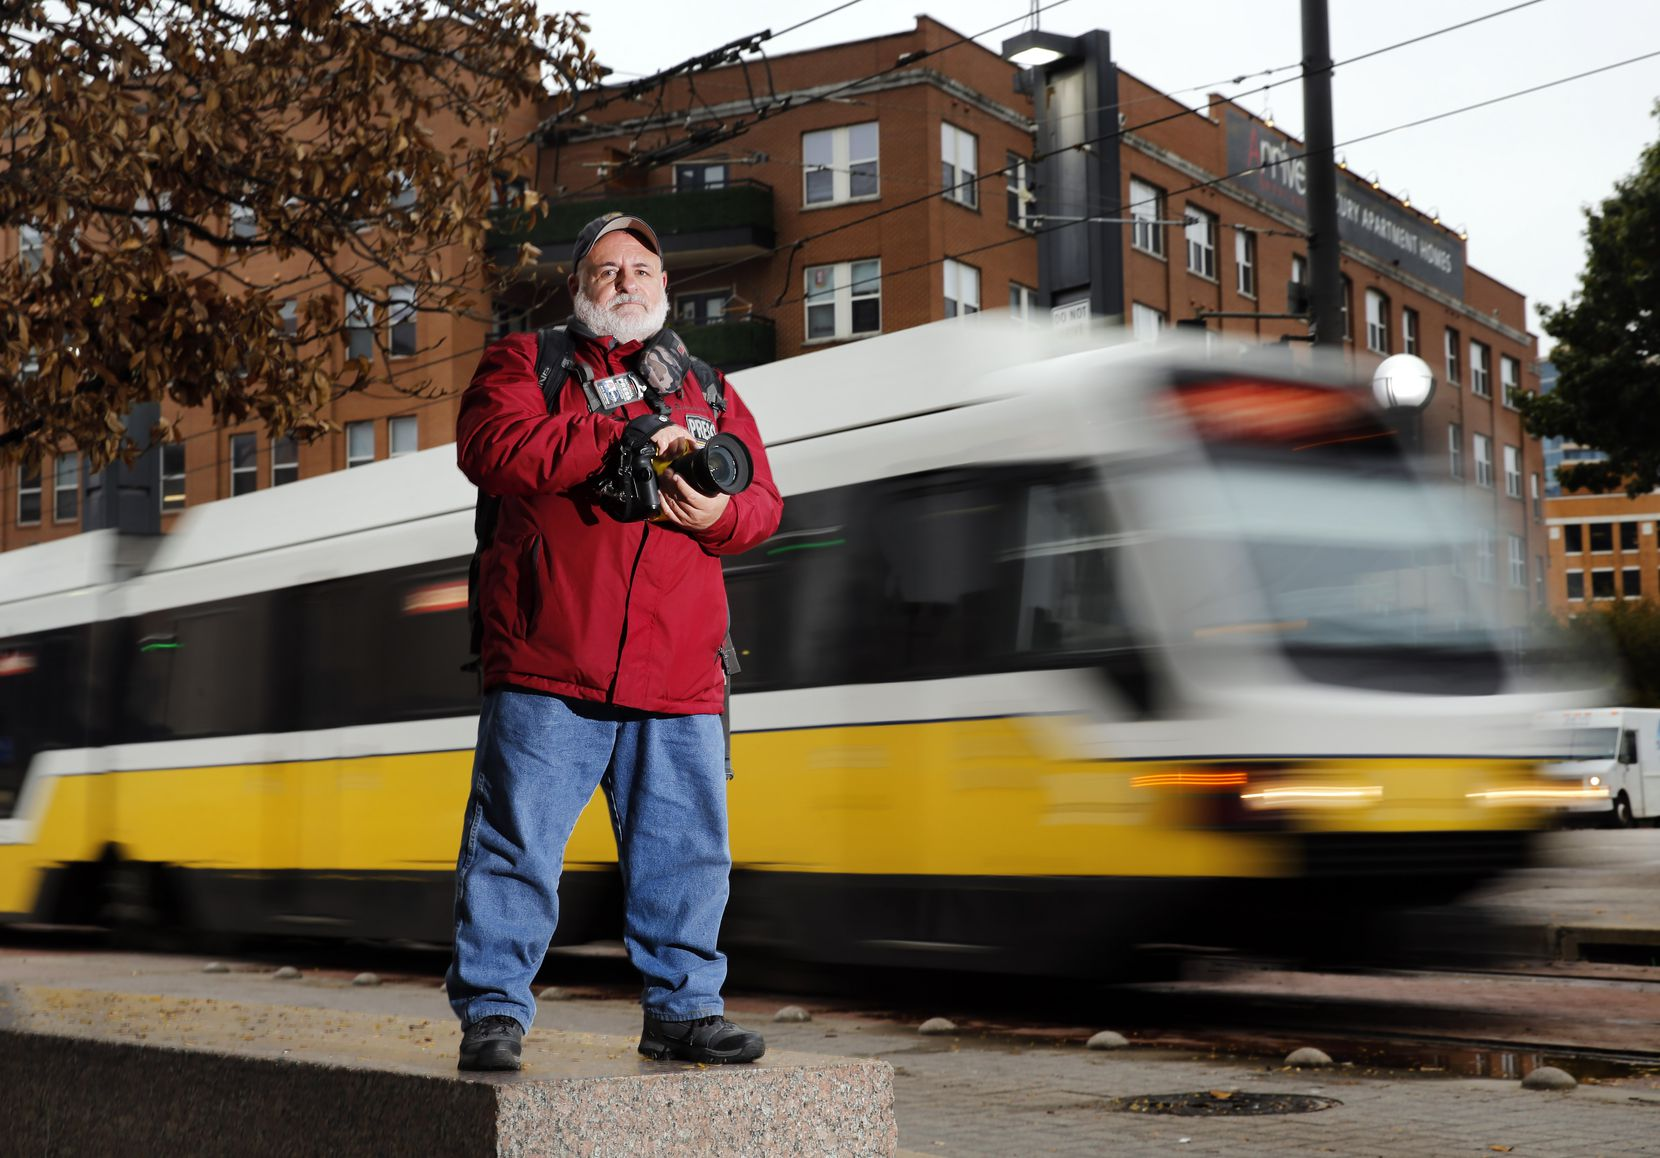 Dallas-Fort Worth's transit authority has agreed to pay Avi Adelman $345,000 to settle his federal civil rights lawsuit alleging he was illegally arrested for taking photos of someone being treated for an overdose on public property.